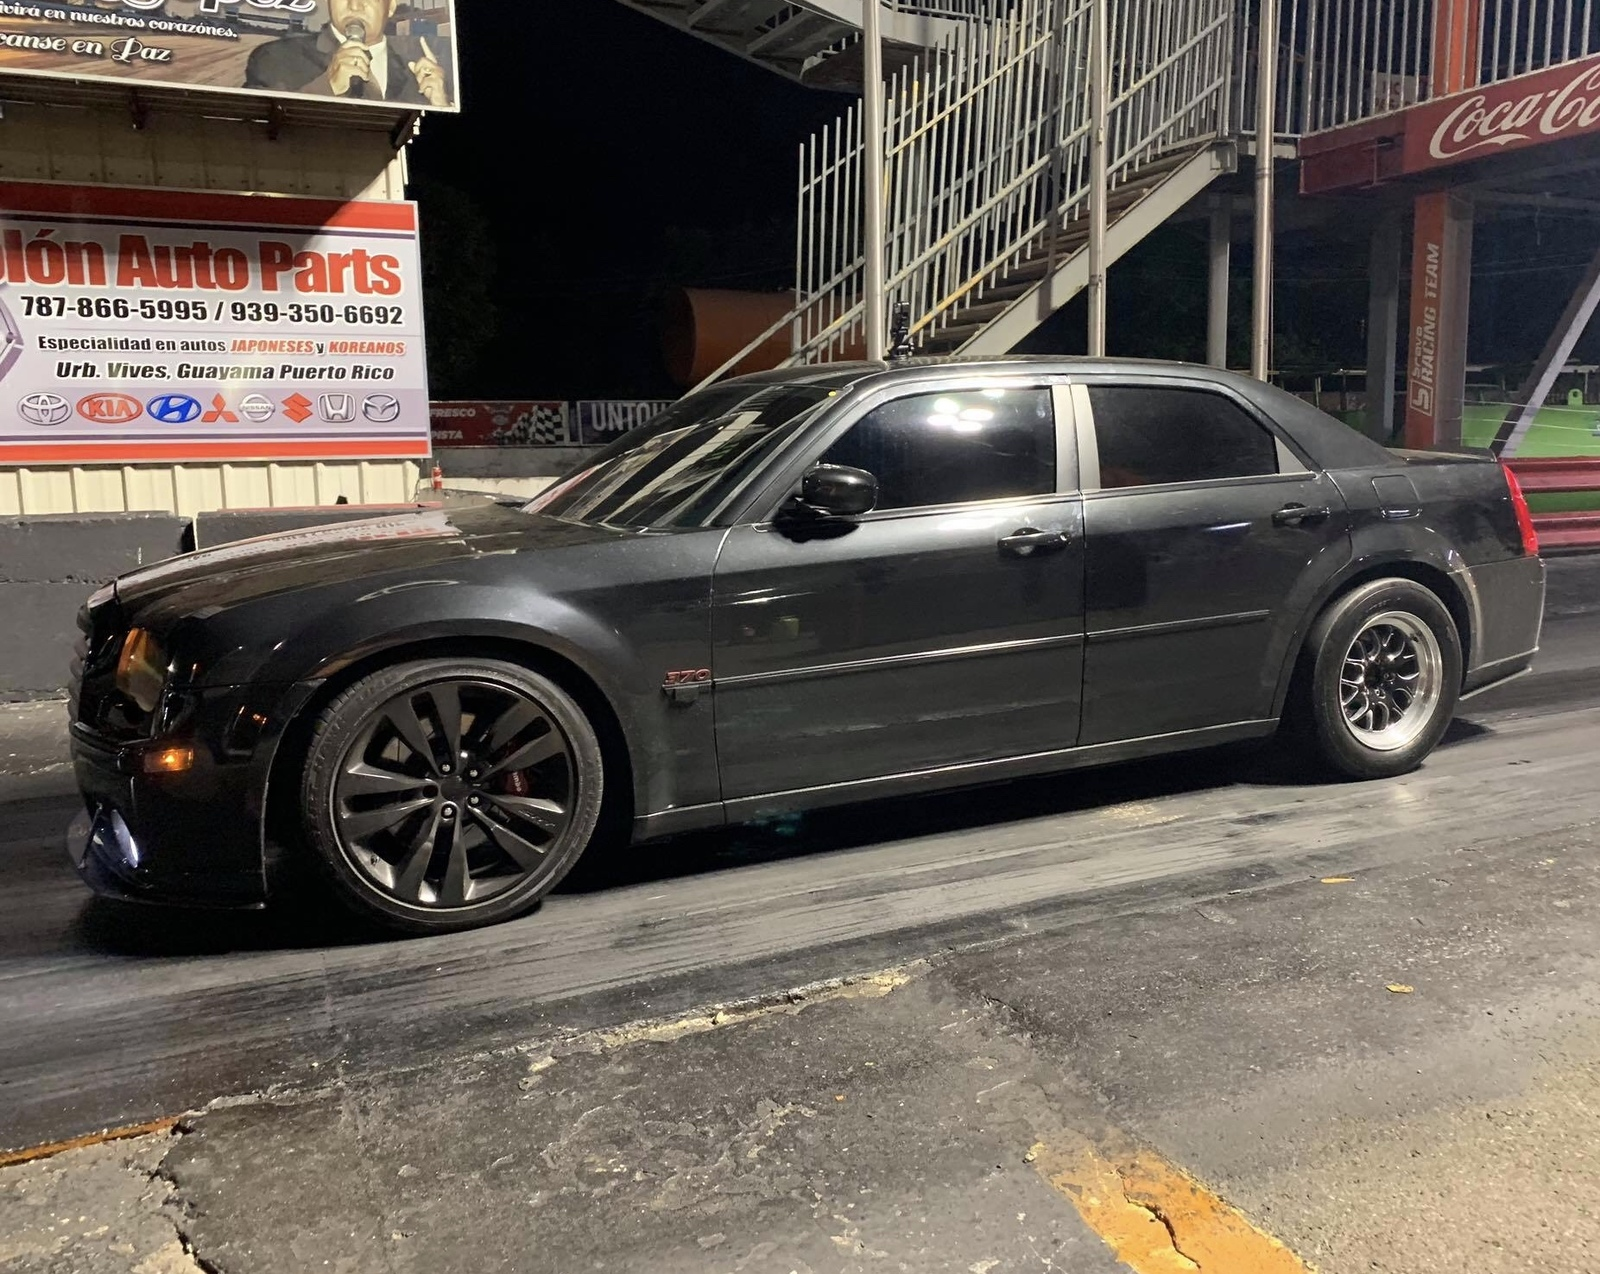 Black 2006 Chrysler 300 SRT